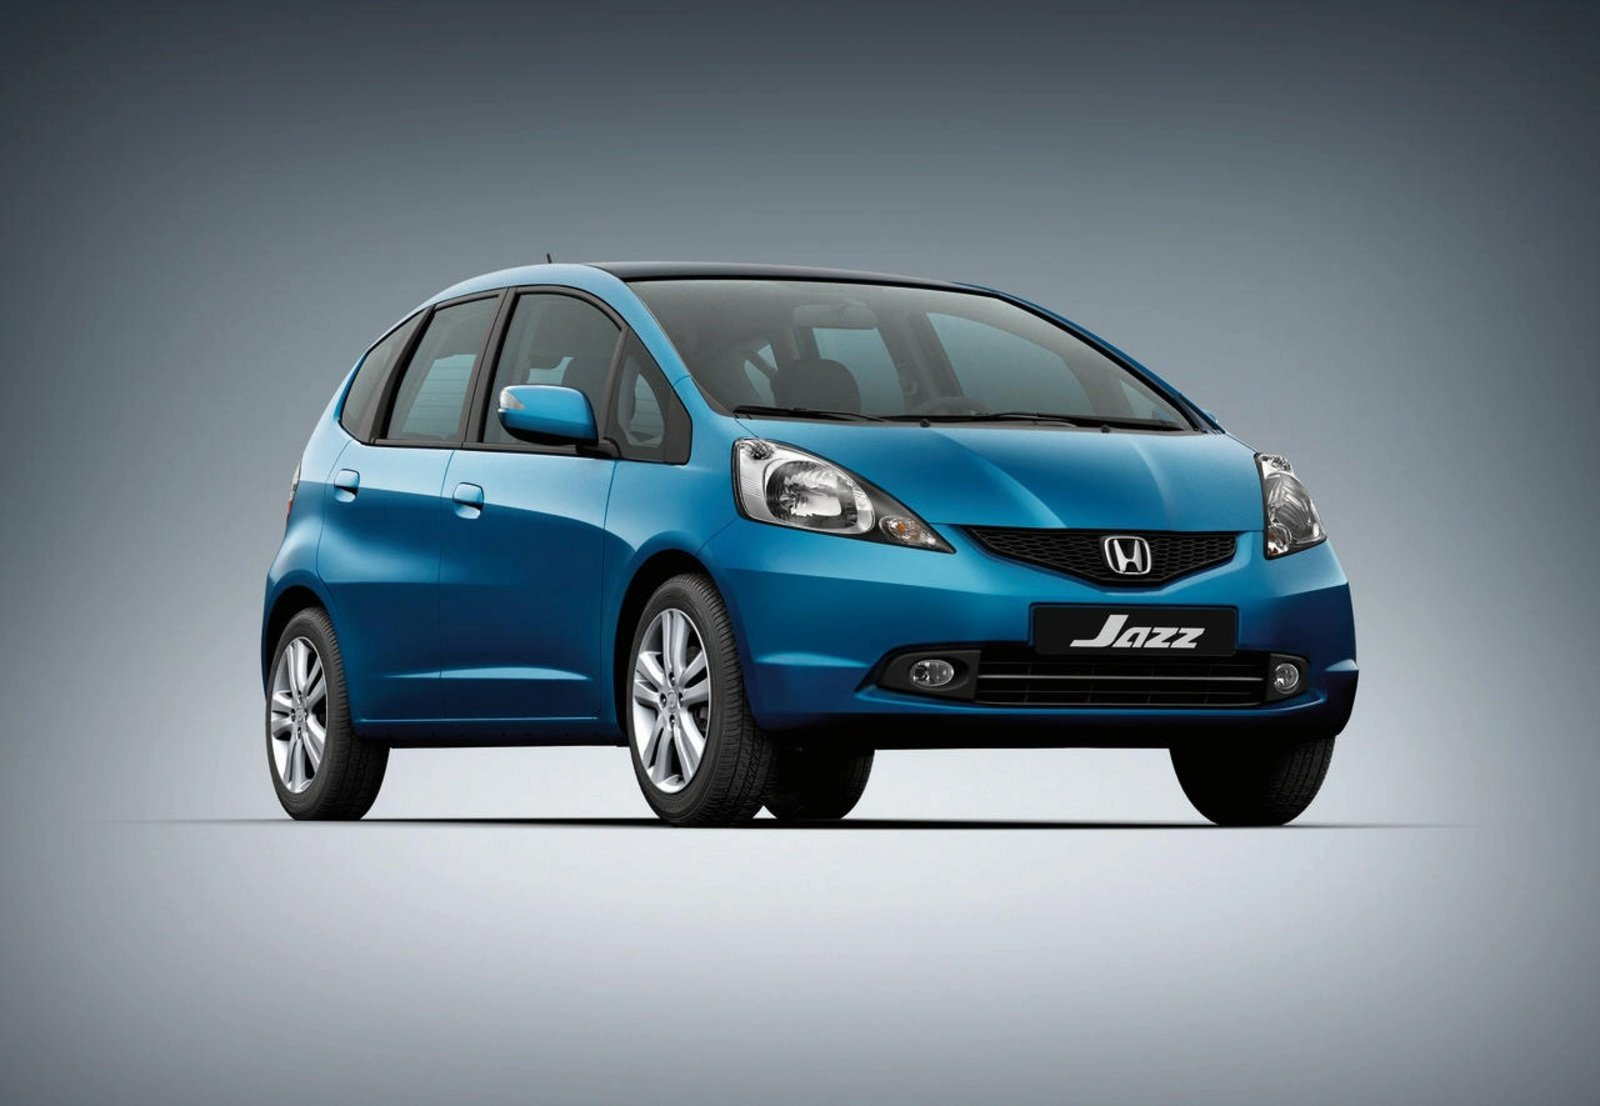 2009 honda fit jazz review top speed. Black Bedroom Furniture Sets. Home Design Ideas